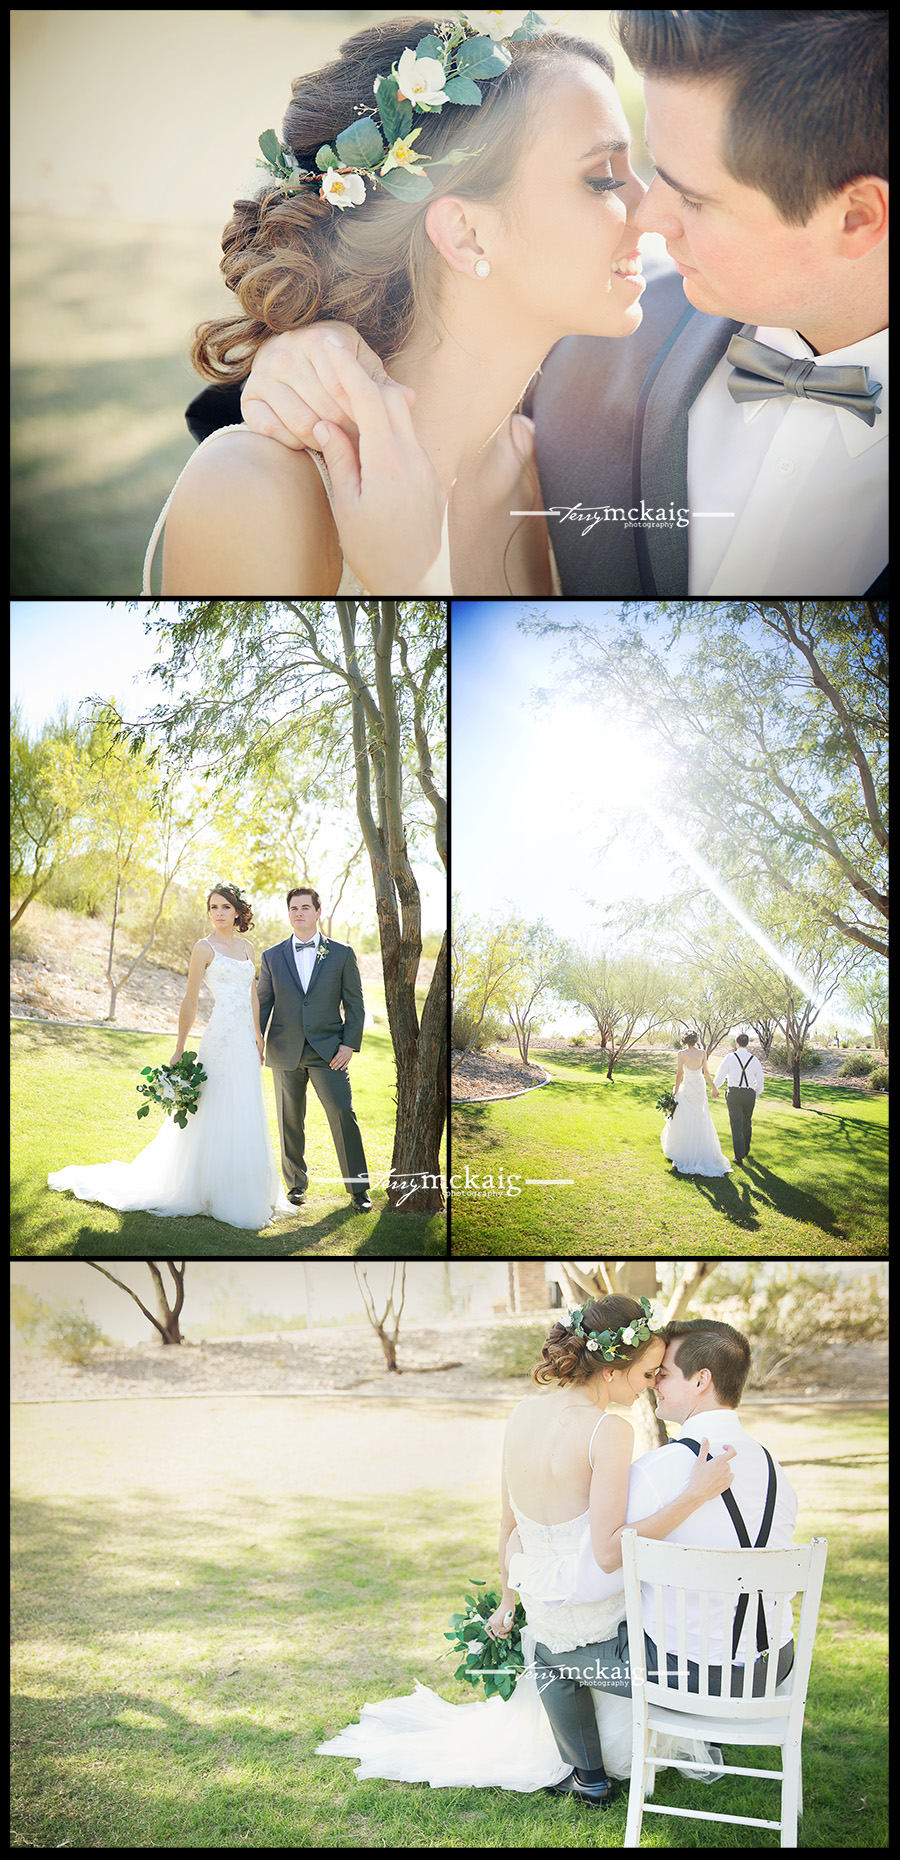 Desert wedding Terry McKaig Photography wedding photography